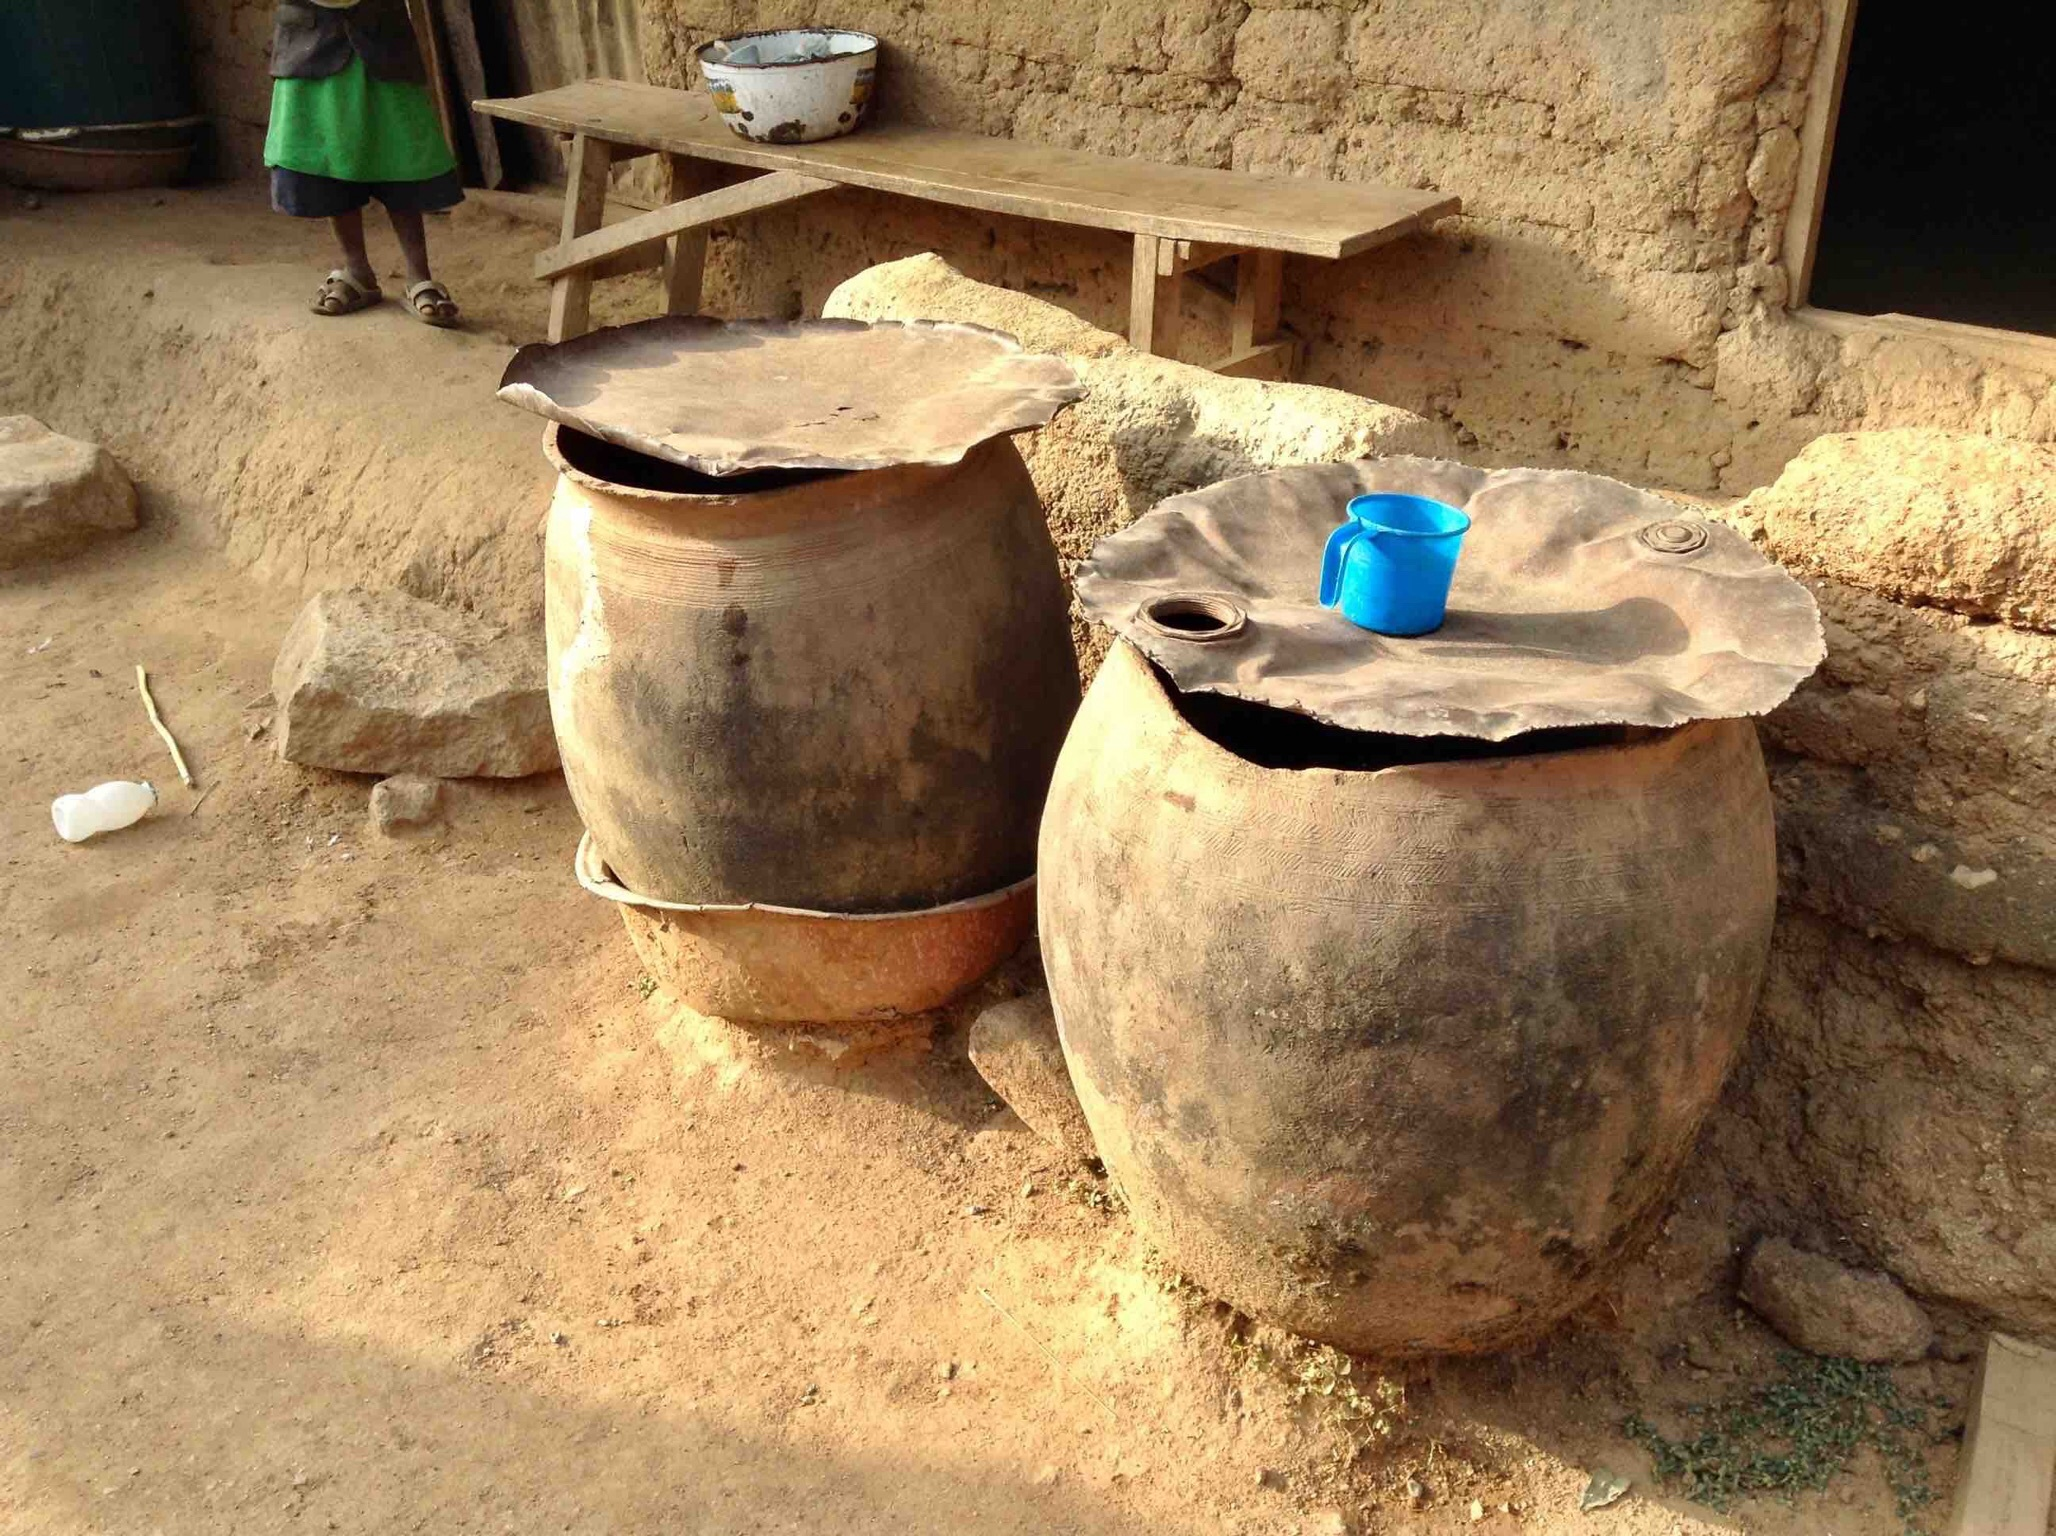 Water drums in Langa Langa Village, Nasarawa State, Nigeria. #JujuFilms